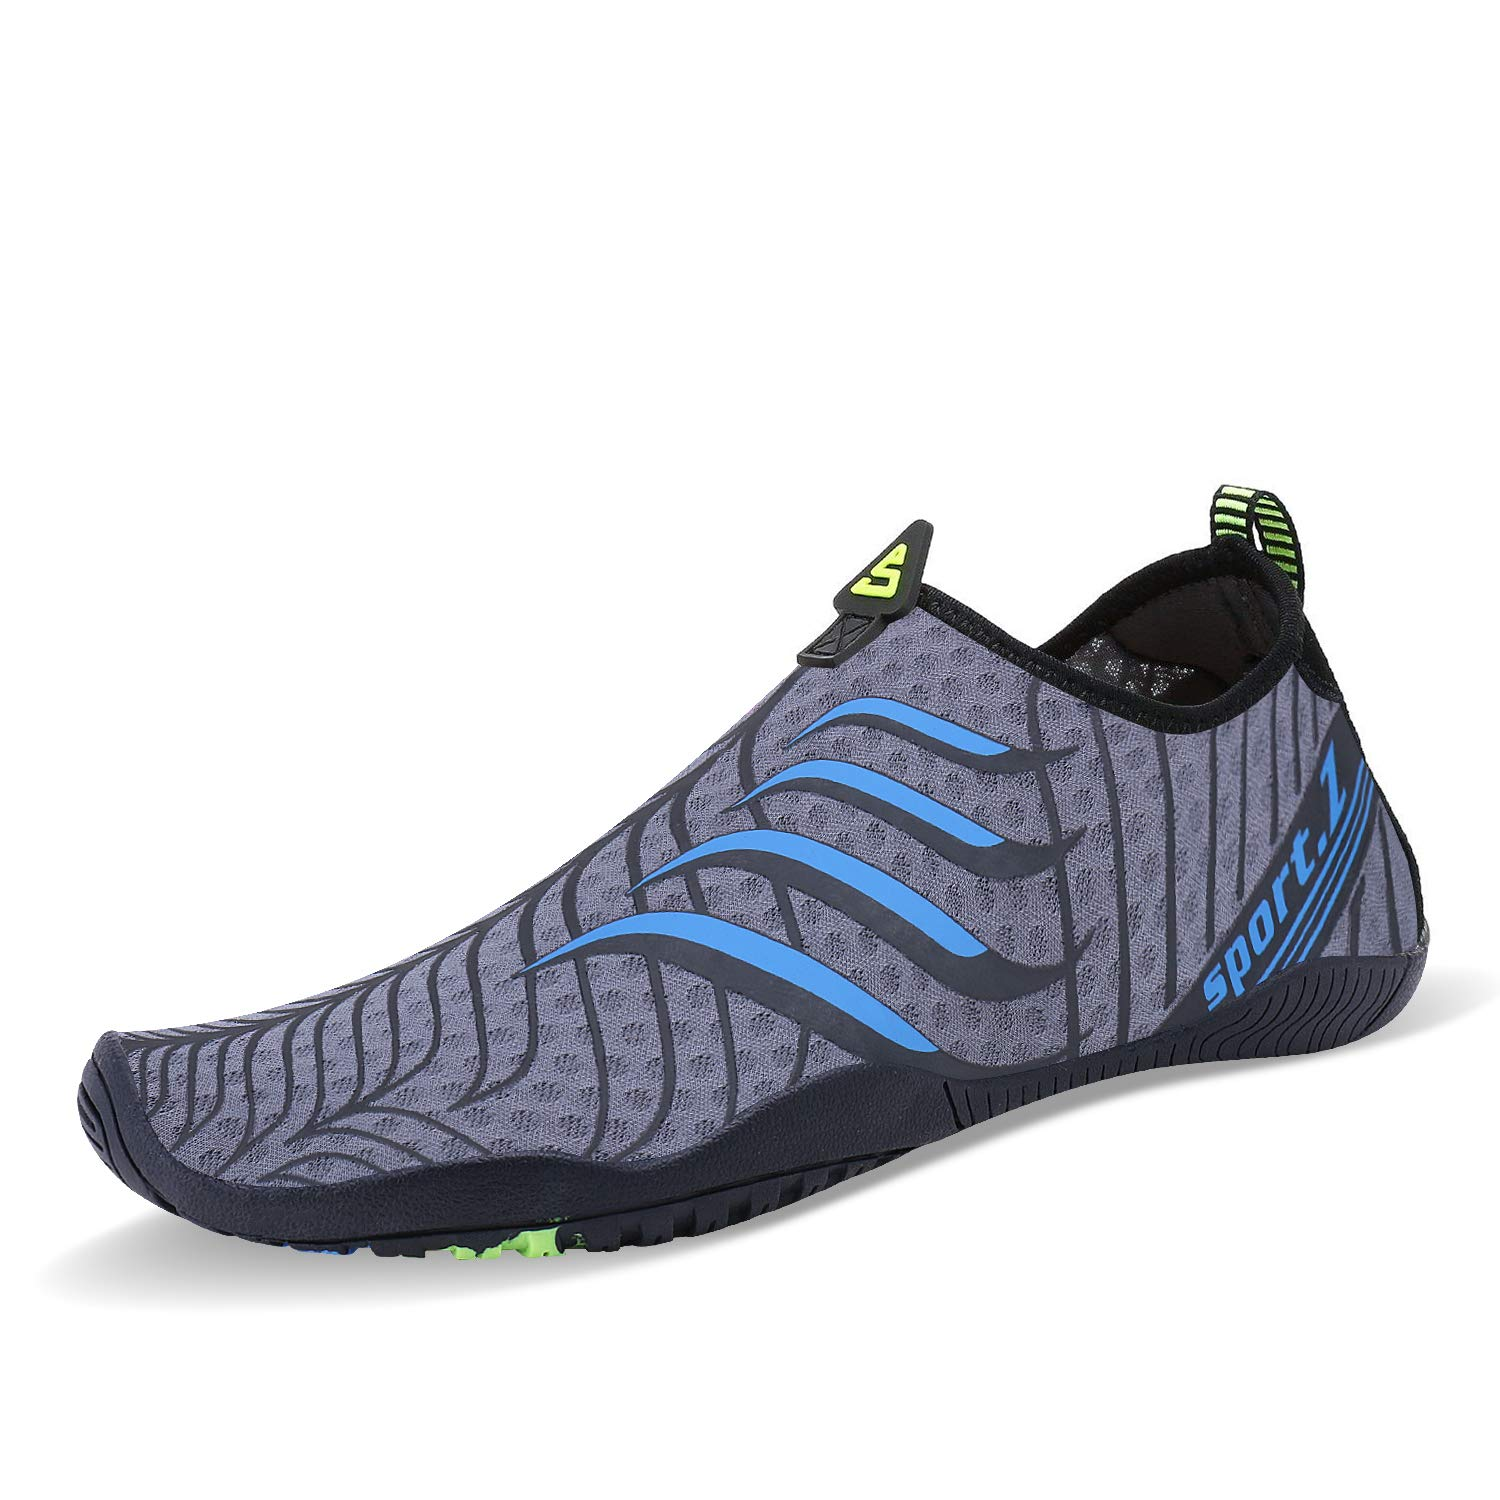 PENGCHENG Mens Womens Water Sports Shoes Quick-Dry Lightweight Barefoot Wide Feet Toe Solid Drainage Sole for Swim Diving Surf Aqua Pool Beach Jogging Trip